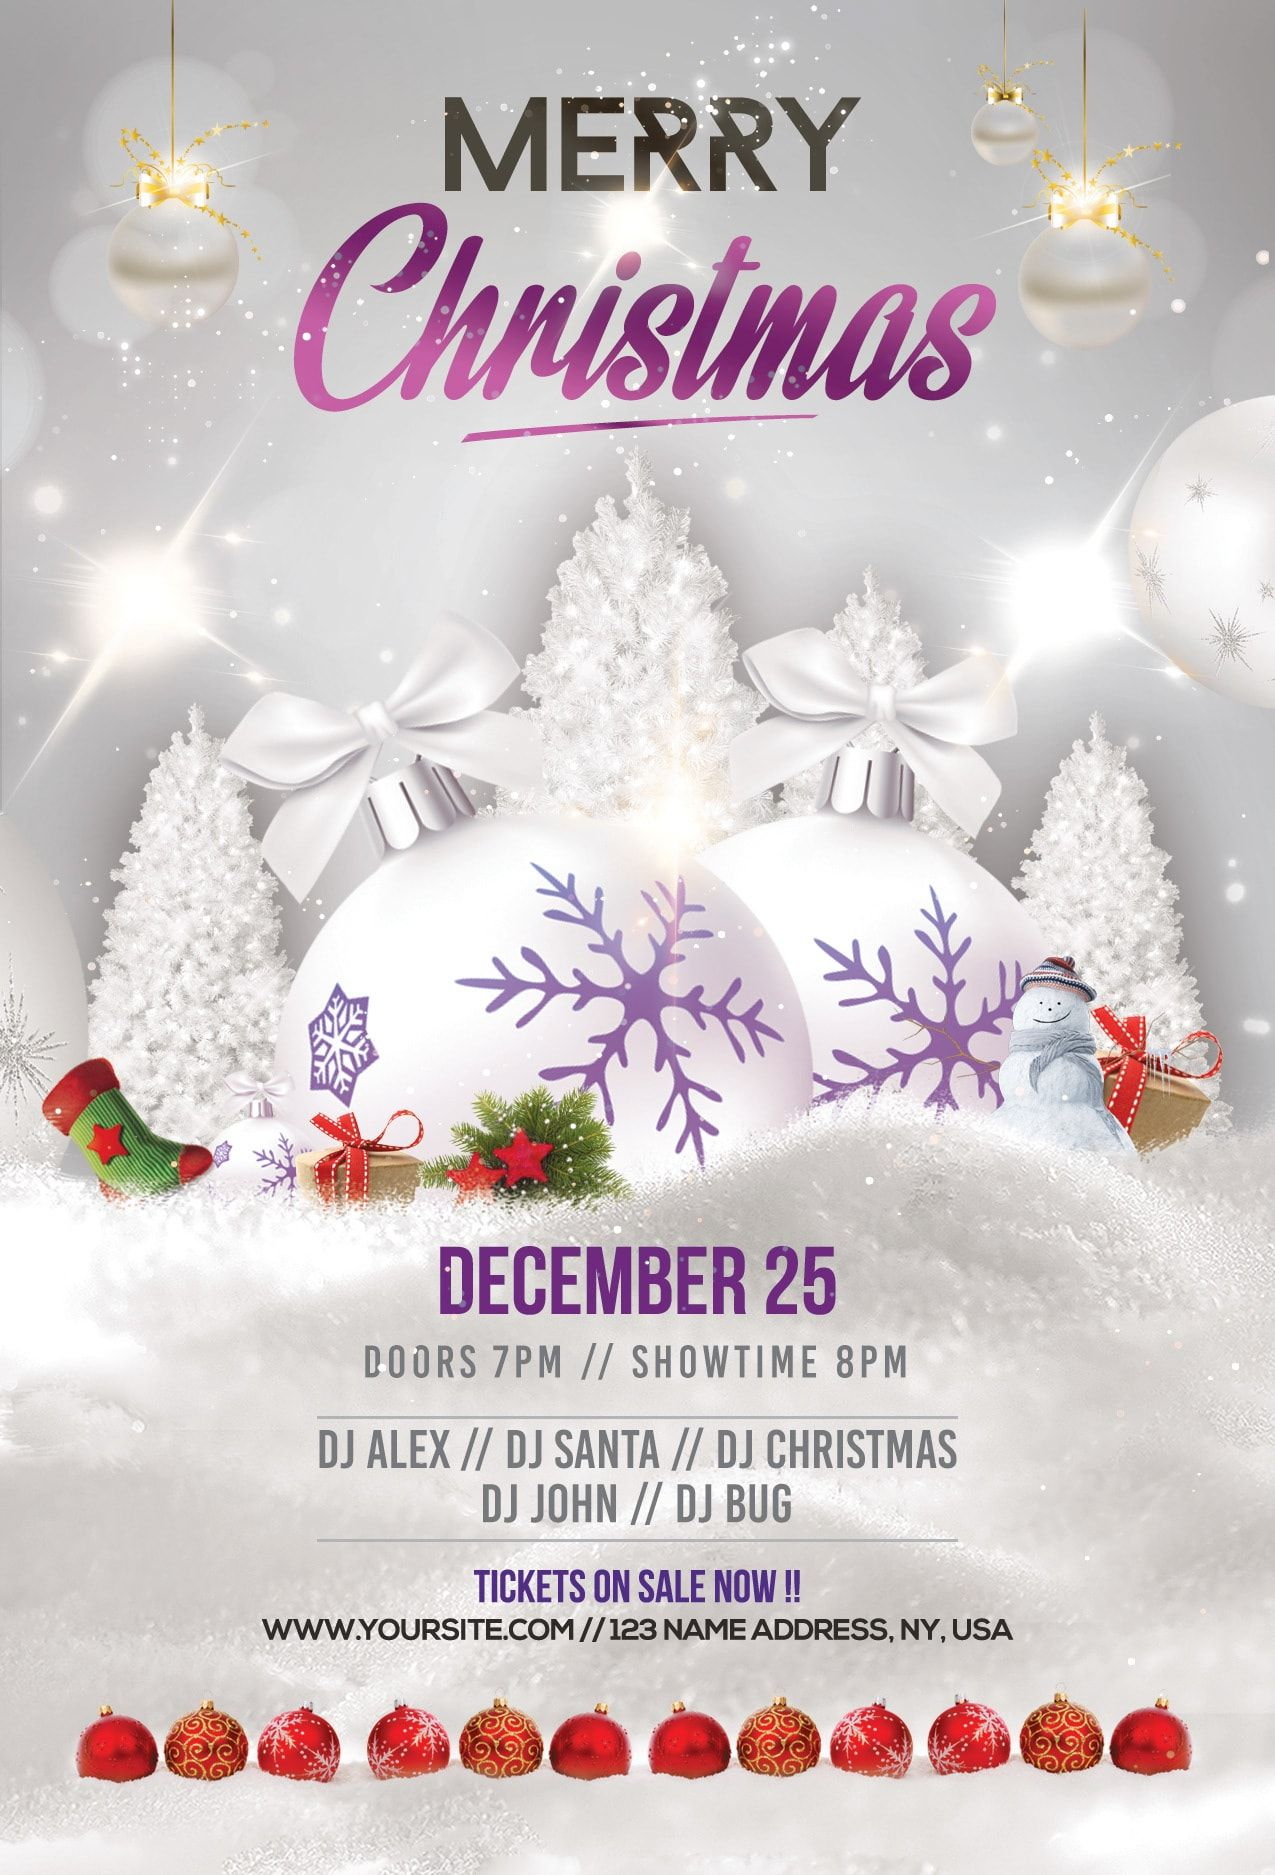 Merry Christmas Holiday Free Psd Flyer Template Stockpsd In Christmas Brochure Templa Free Christmas Flyer Templates Holiday Flyer Template Christmas Flyer